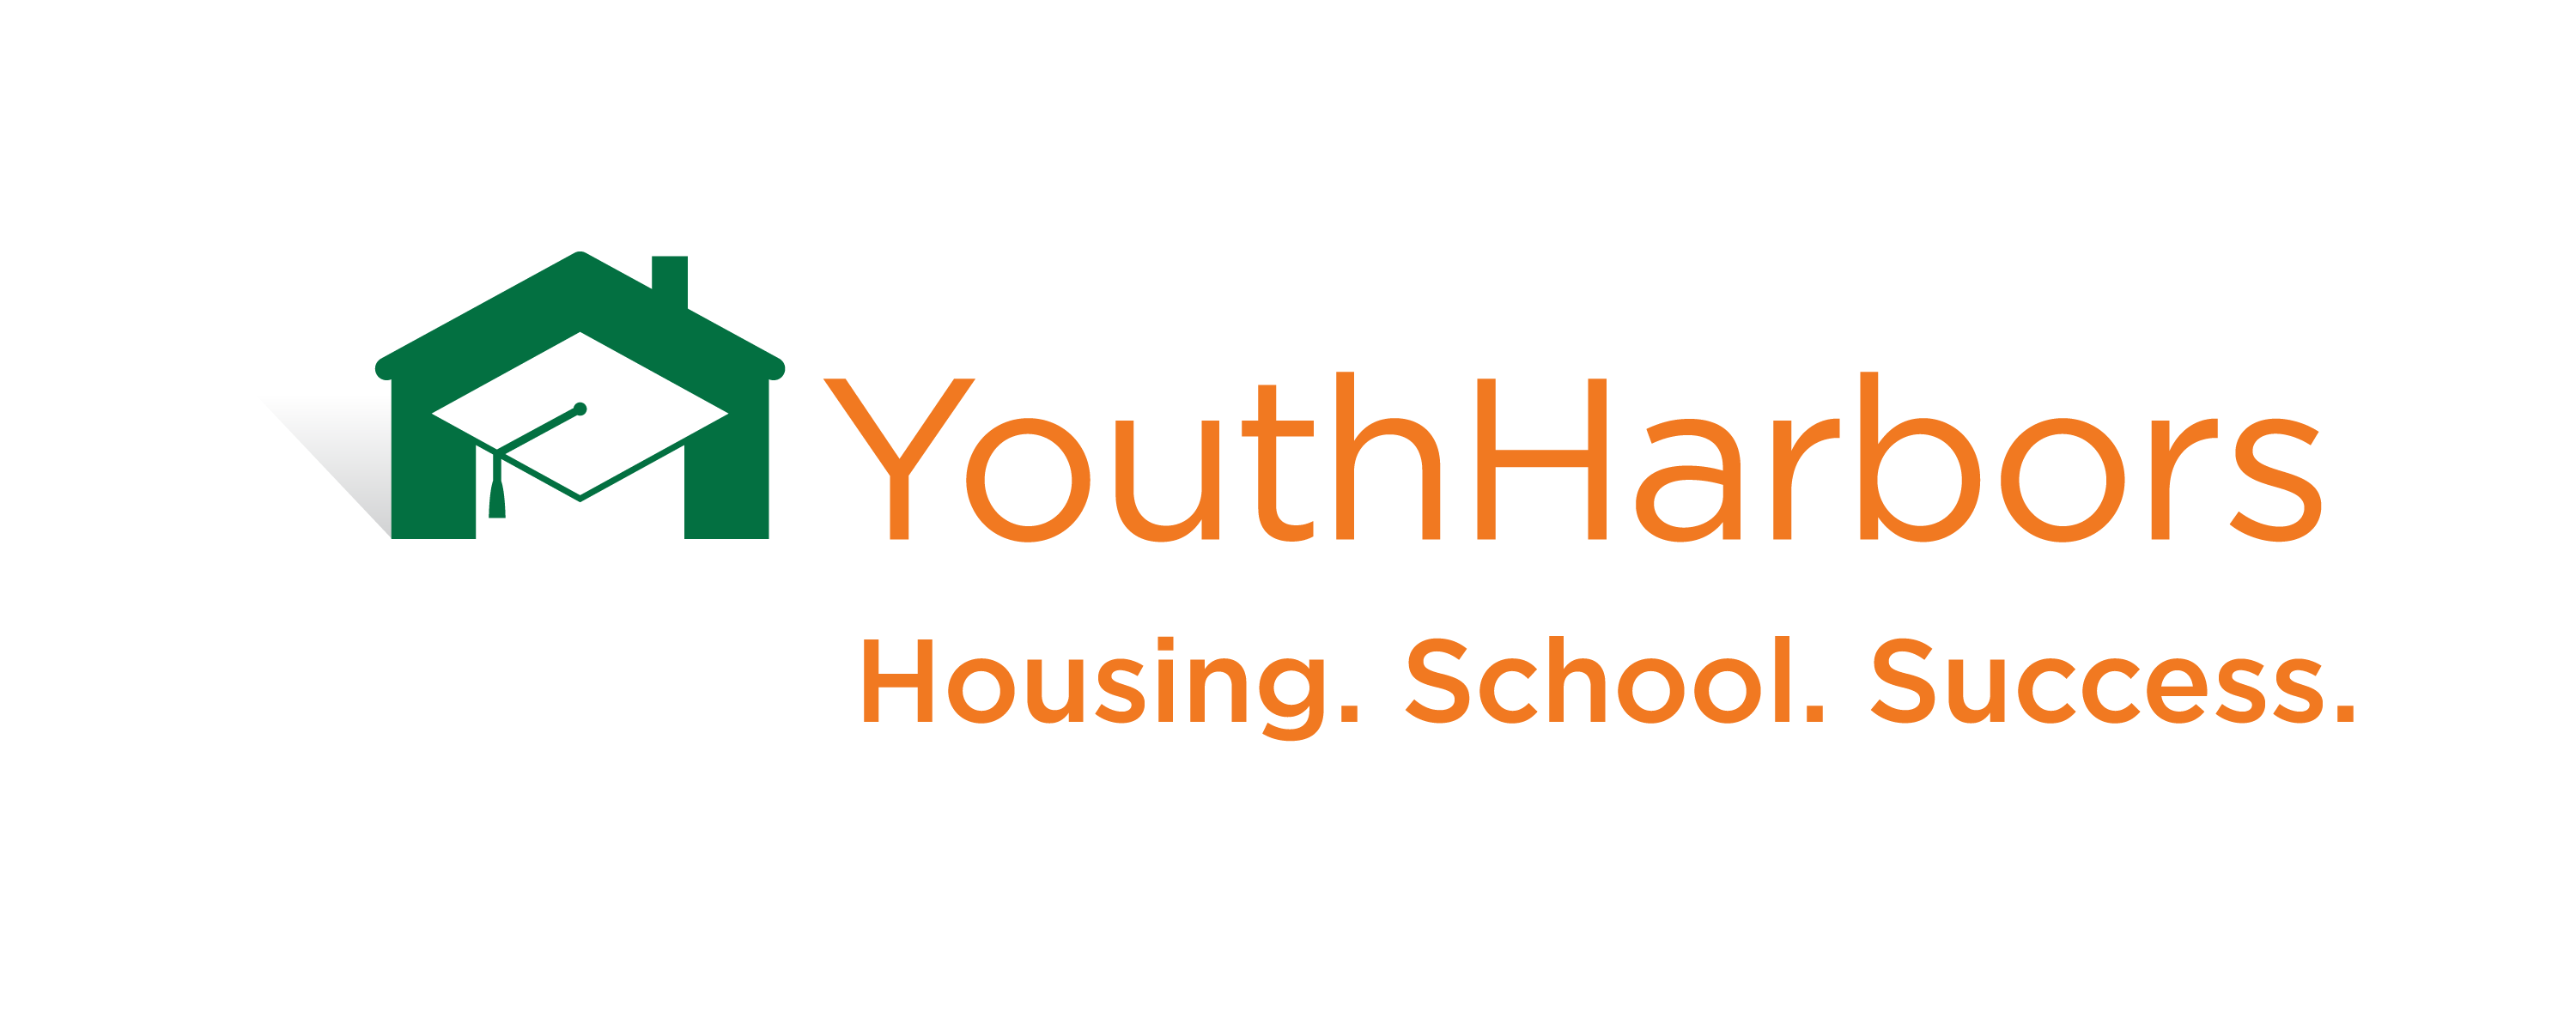 youthharbors youth homelessness schools education